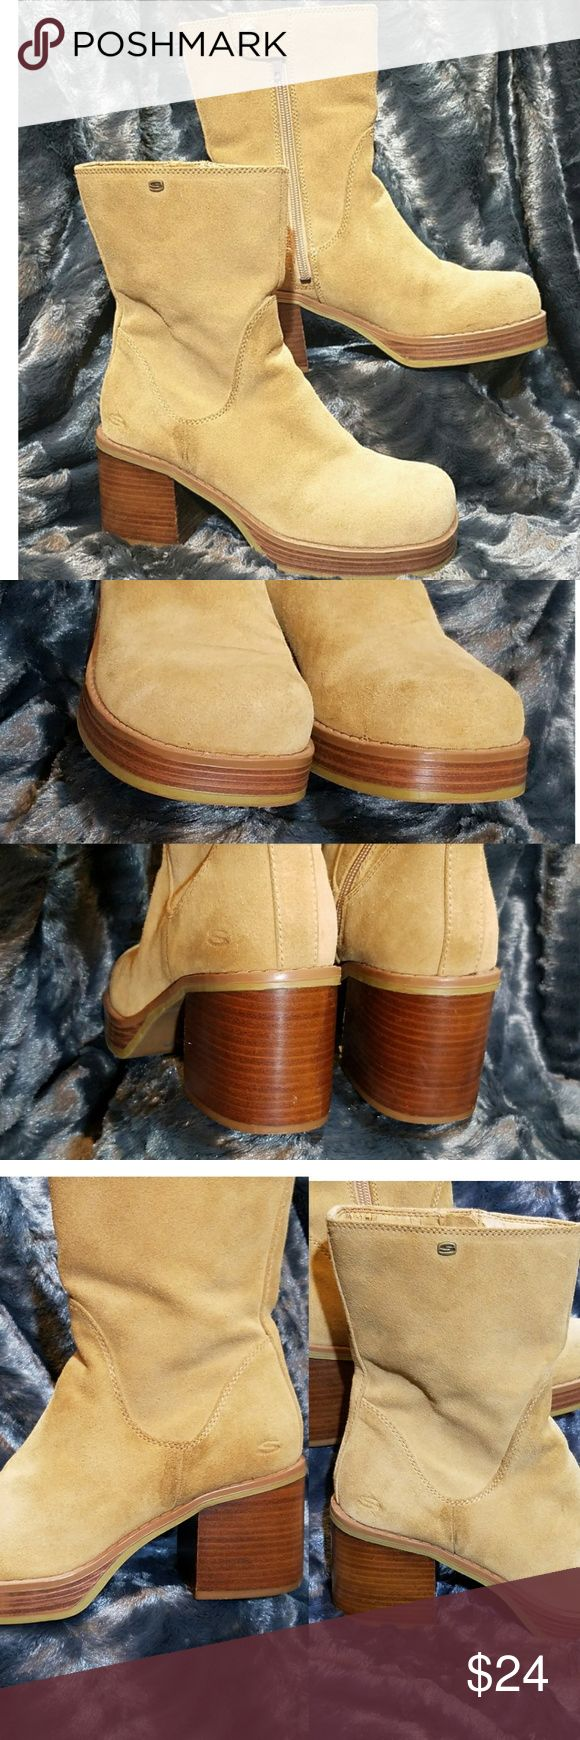 Flash Sale🎁Skechers Suede Leather Mid-Calf Boots Stylish, comfortable chunky suede mid-calf boots. Chunky style block wooden heel. Gently used, please see photos. Great condition!  Retail: $79 Skechers Shoes Heeled Boots